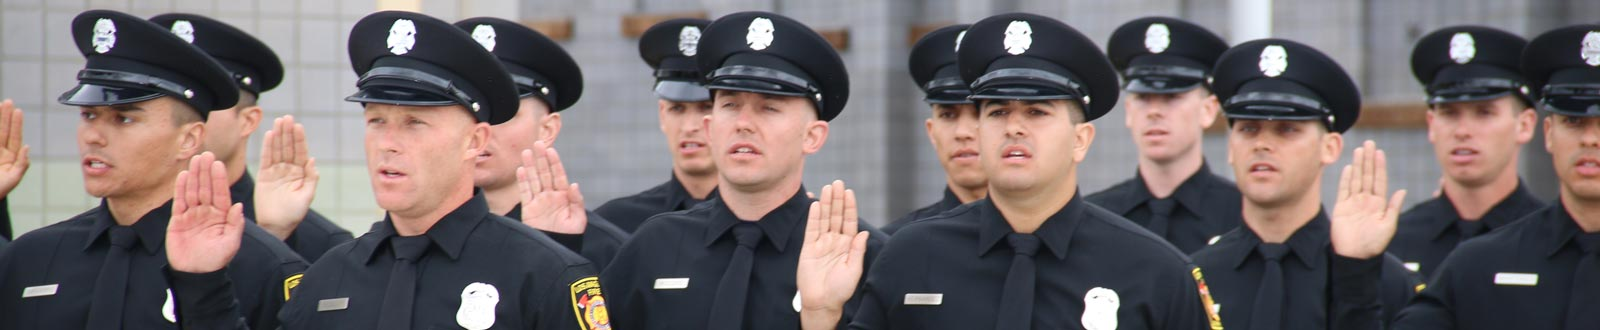 A new class of firefighters take their oath